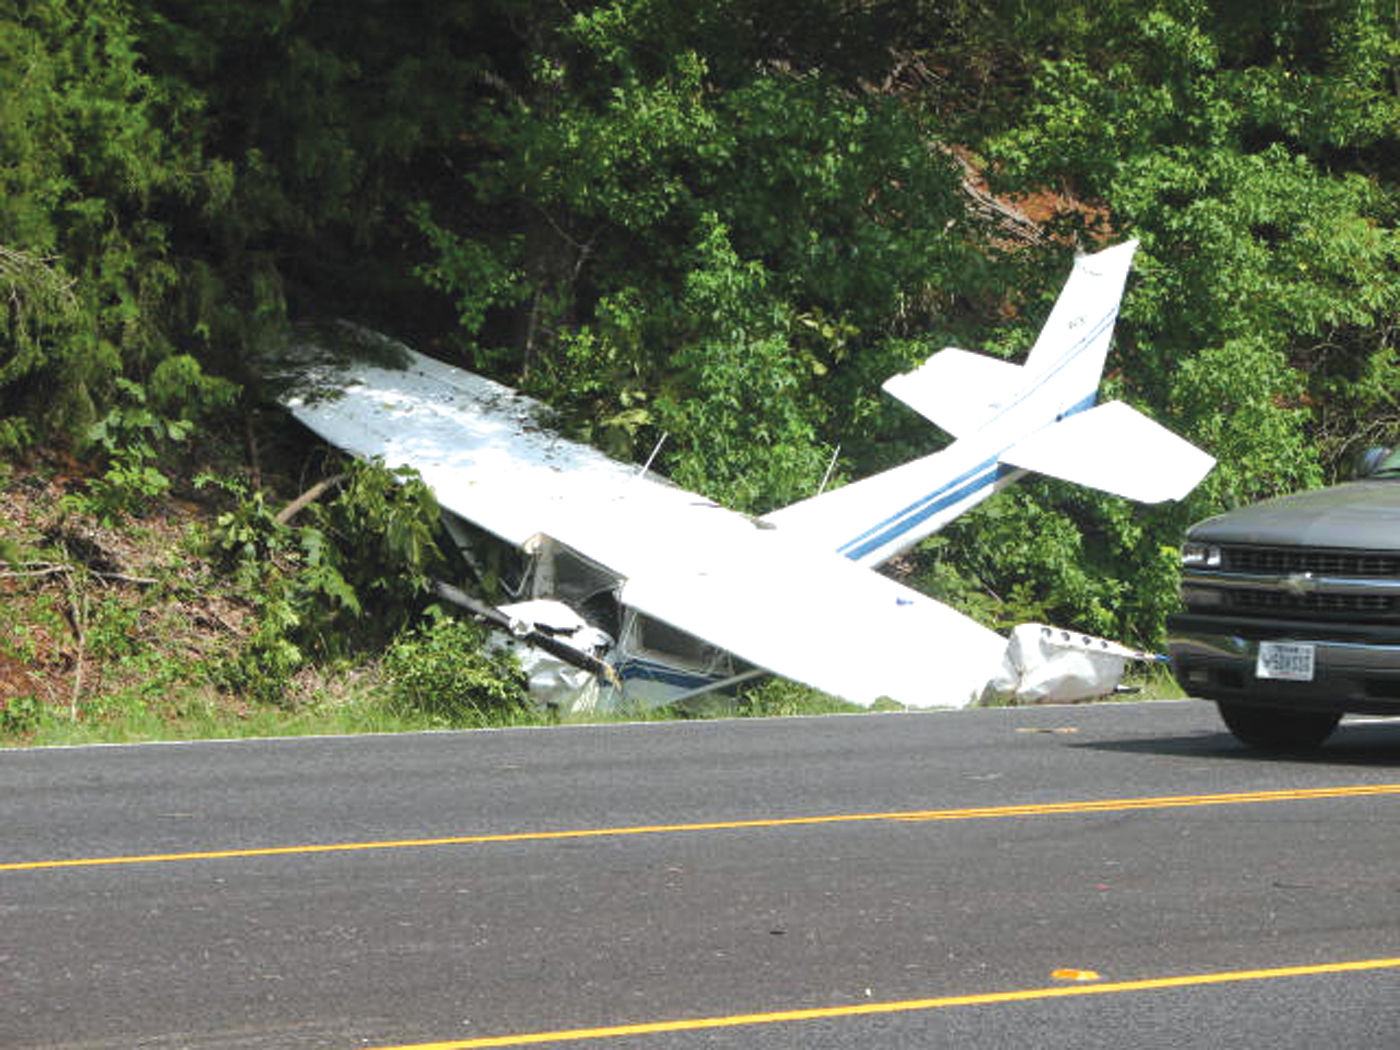 Caught on camera: Plane crash on Texas highway